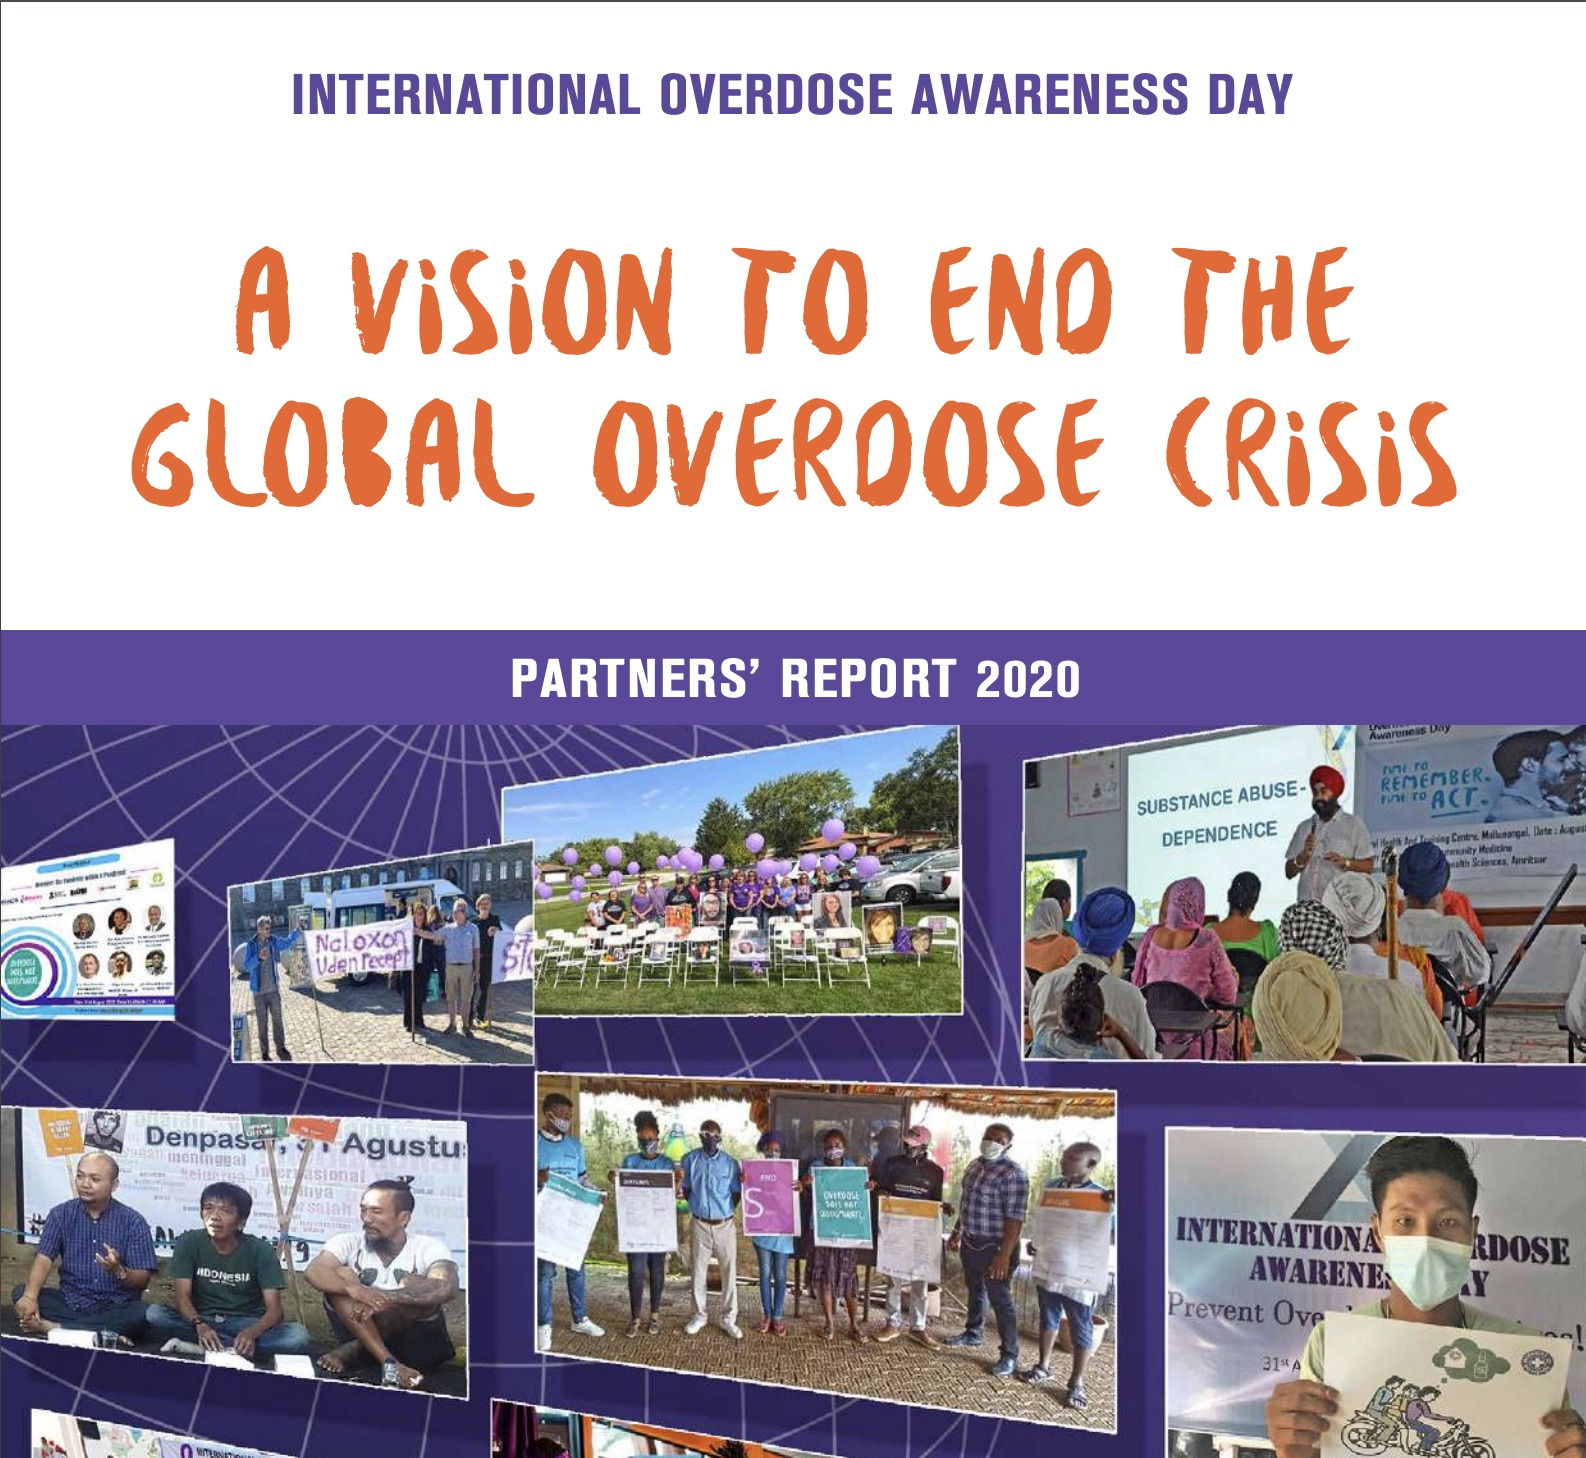 The International Overdose Awareness Day 2020 Partners' Report